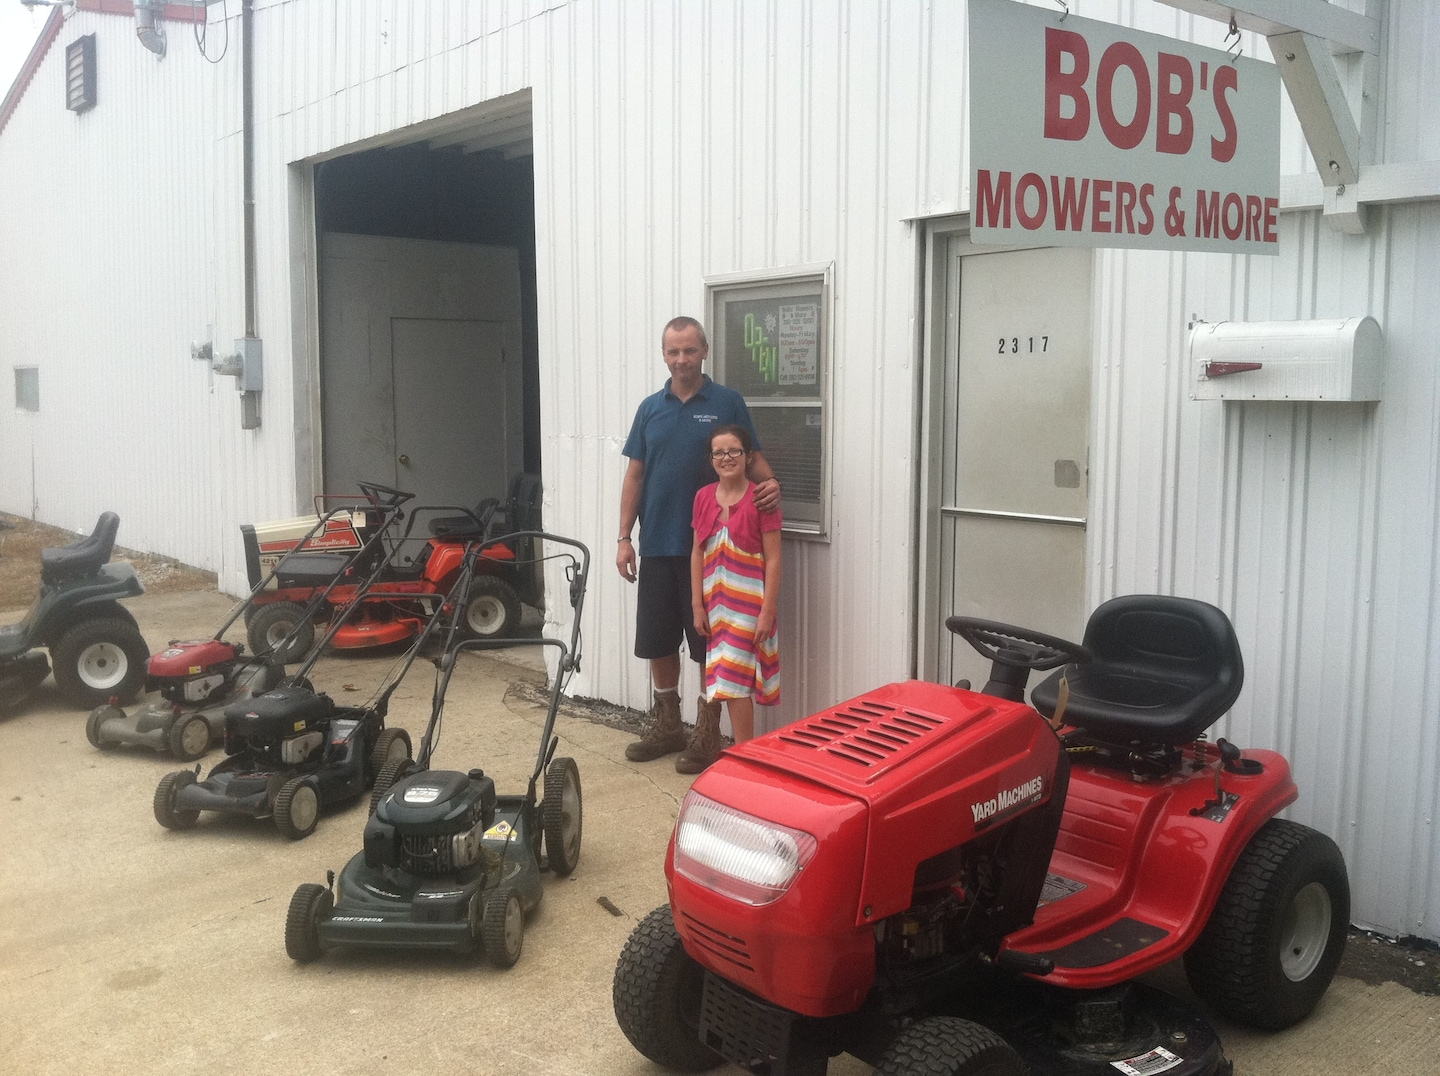 Bob's Mowers & More LLC